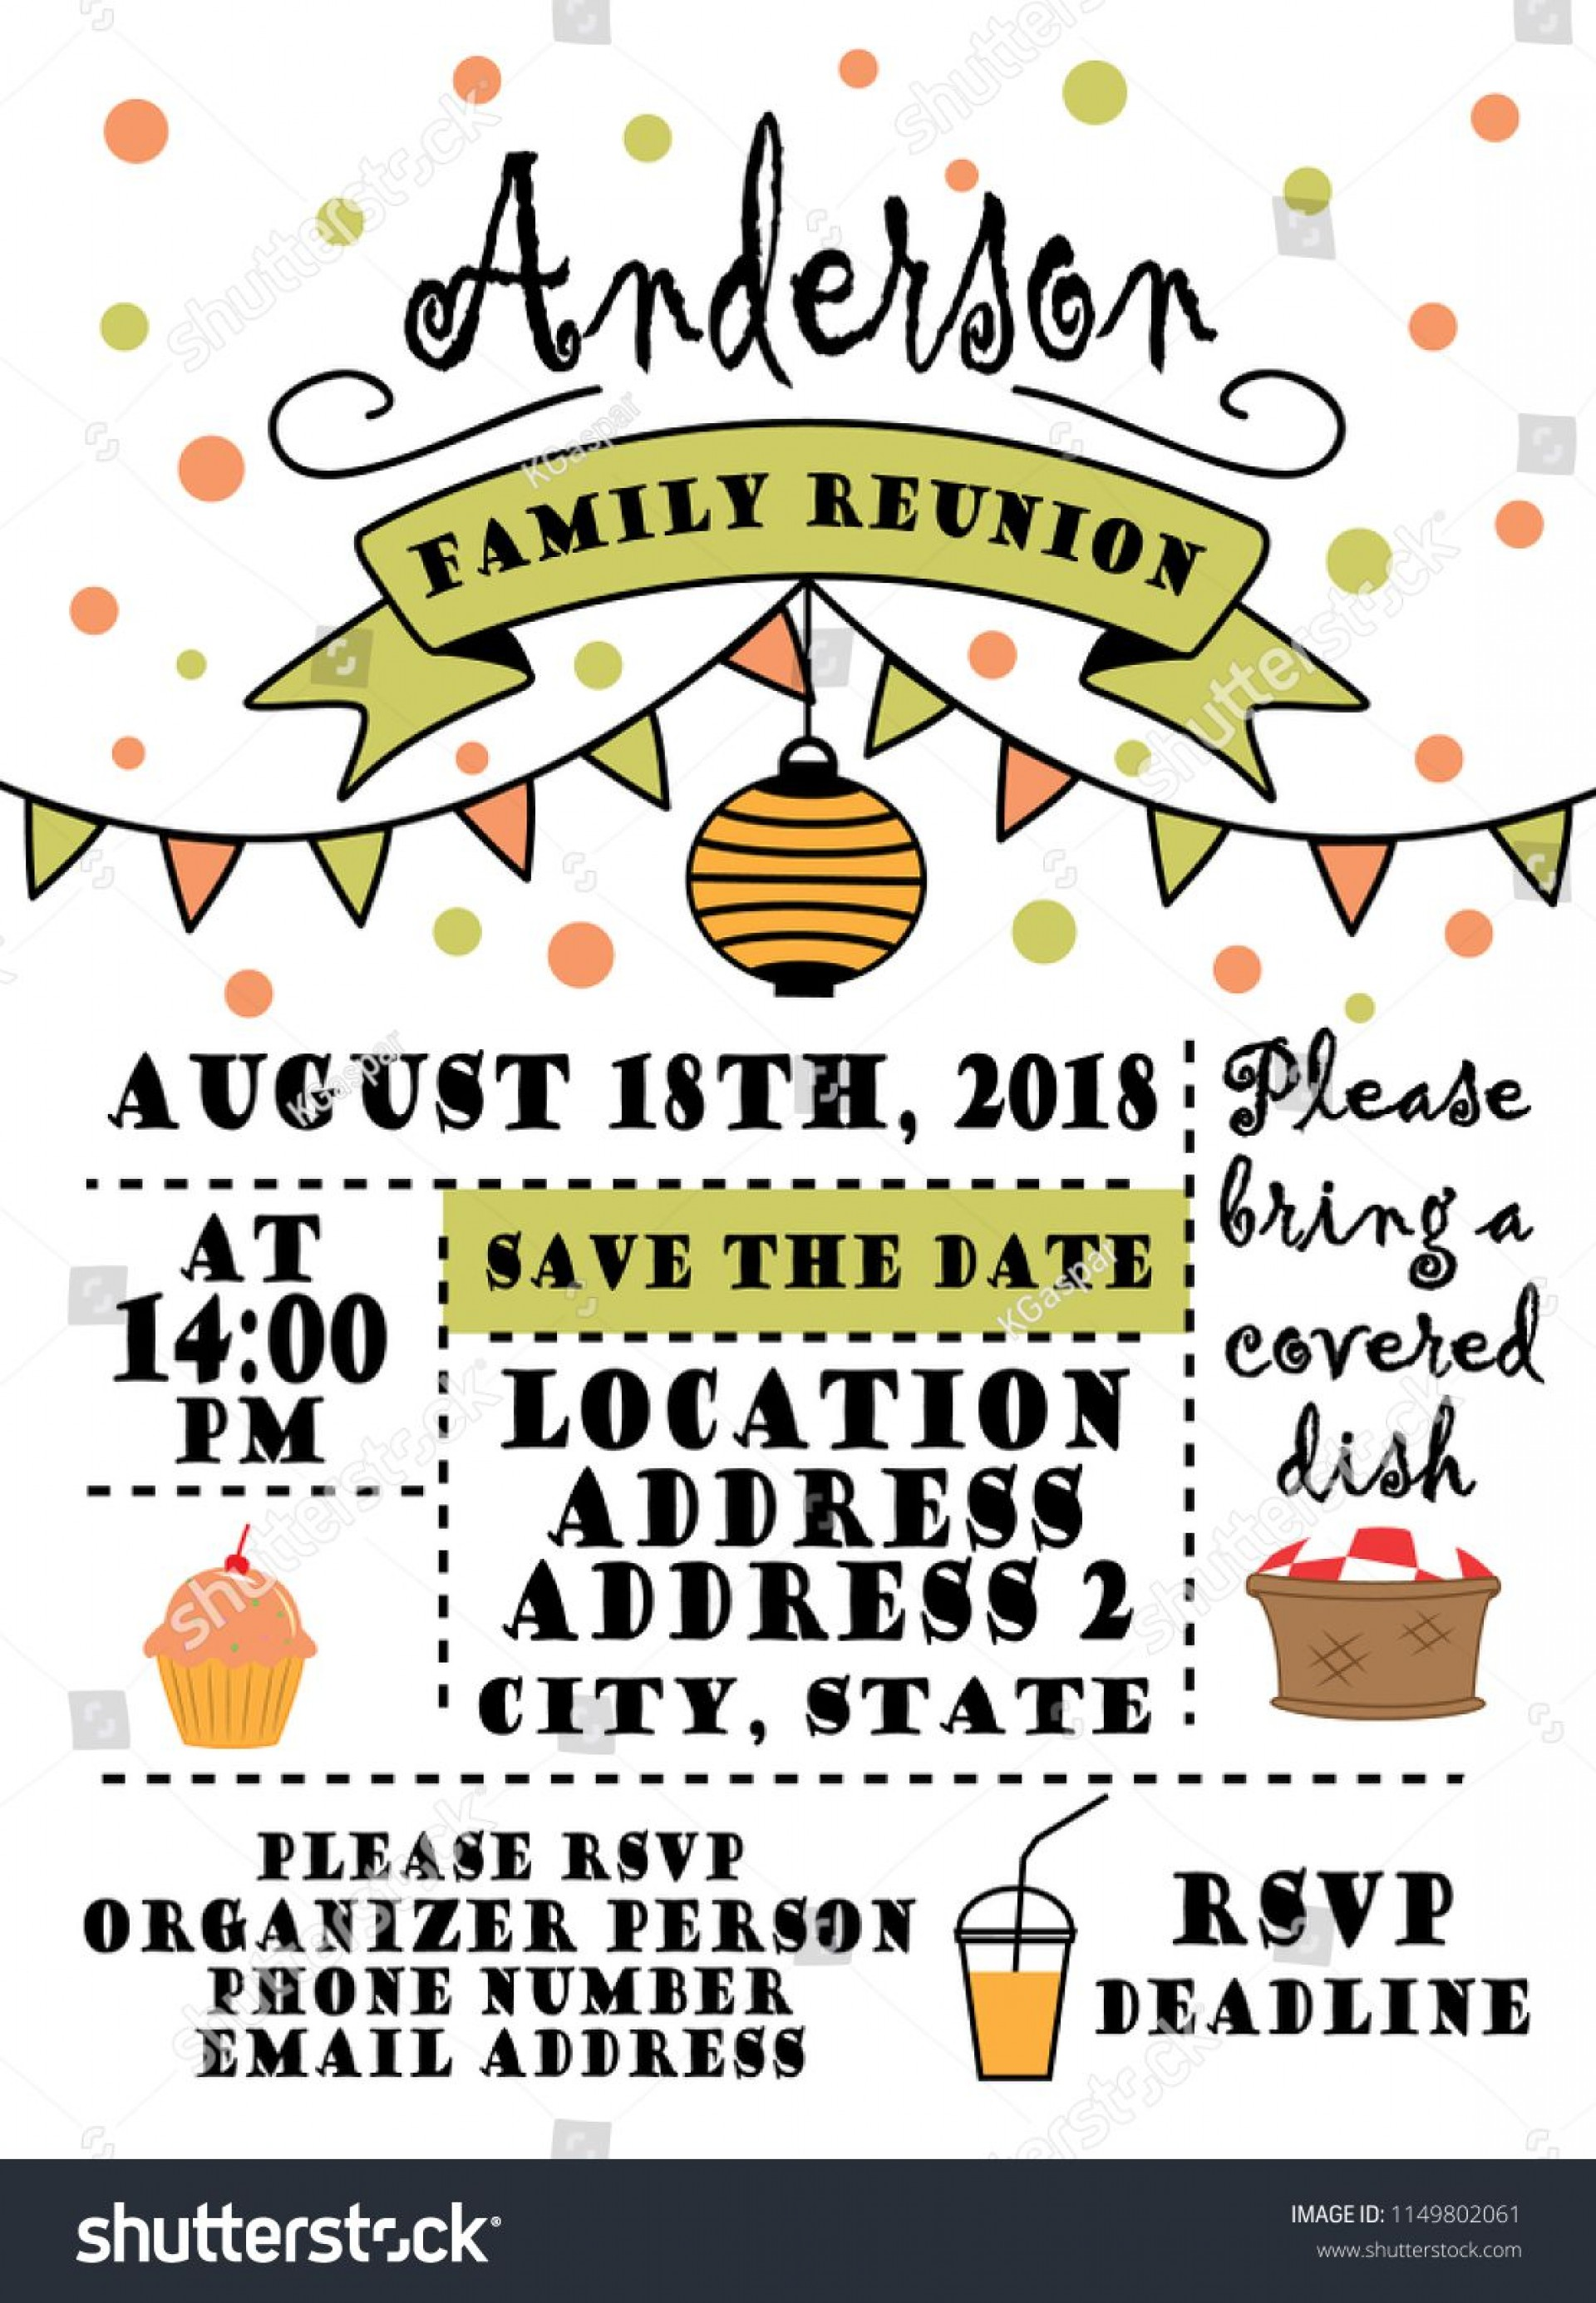 010 Stupendou Family Reunion Invitation Template Free Highest Quality  For Word Online1920